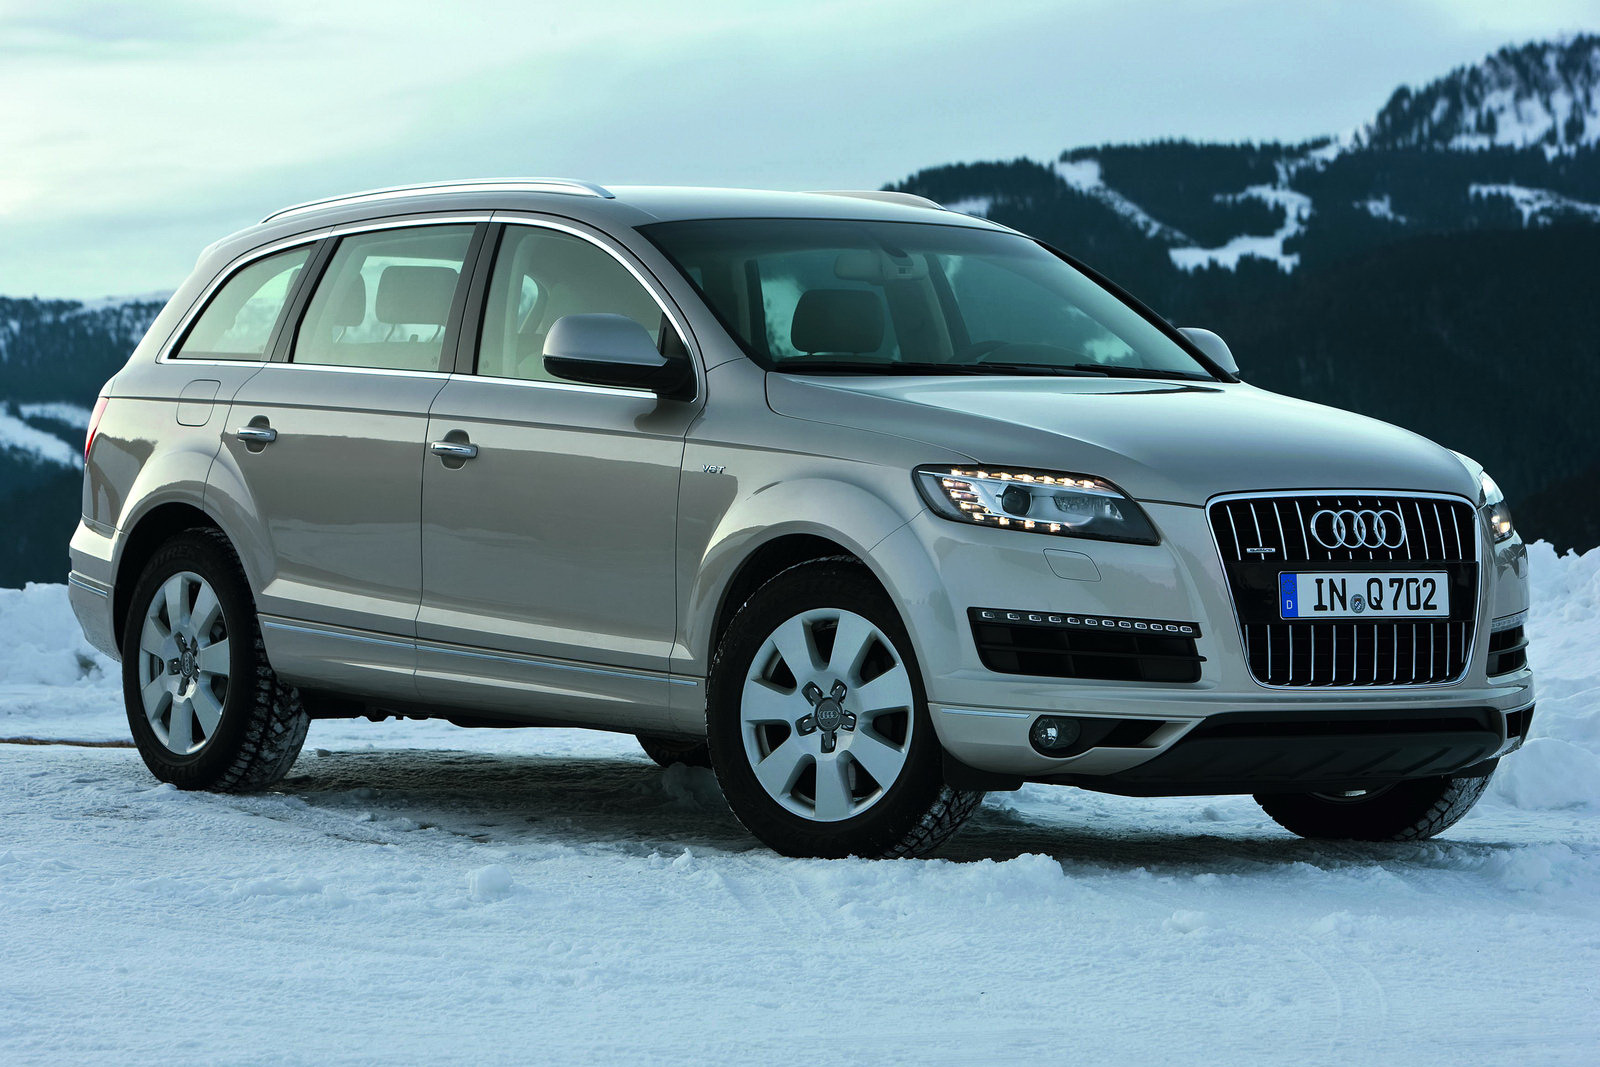 2011 Audi Q7 SUV 2011 Audi Q7 SUV Installed With NewV6 Engines, 8 Speed Transmission and Supercharged TFSI